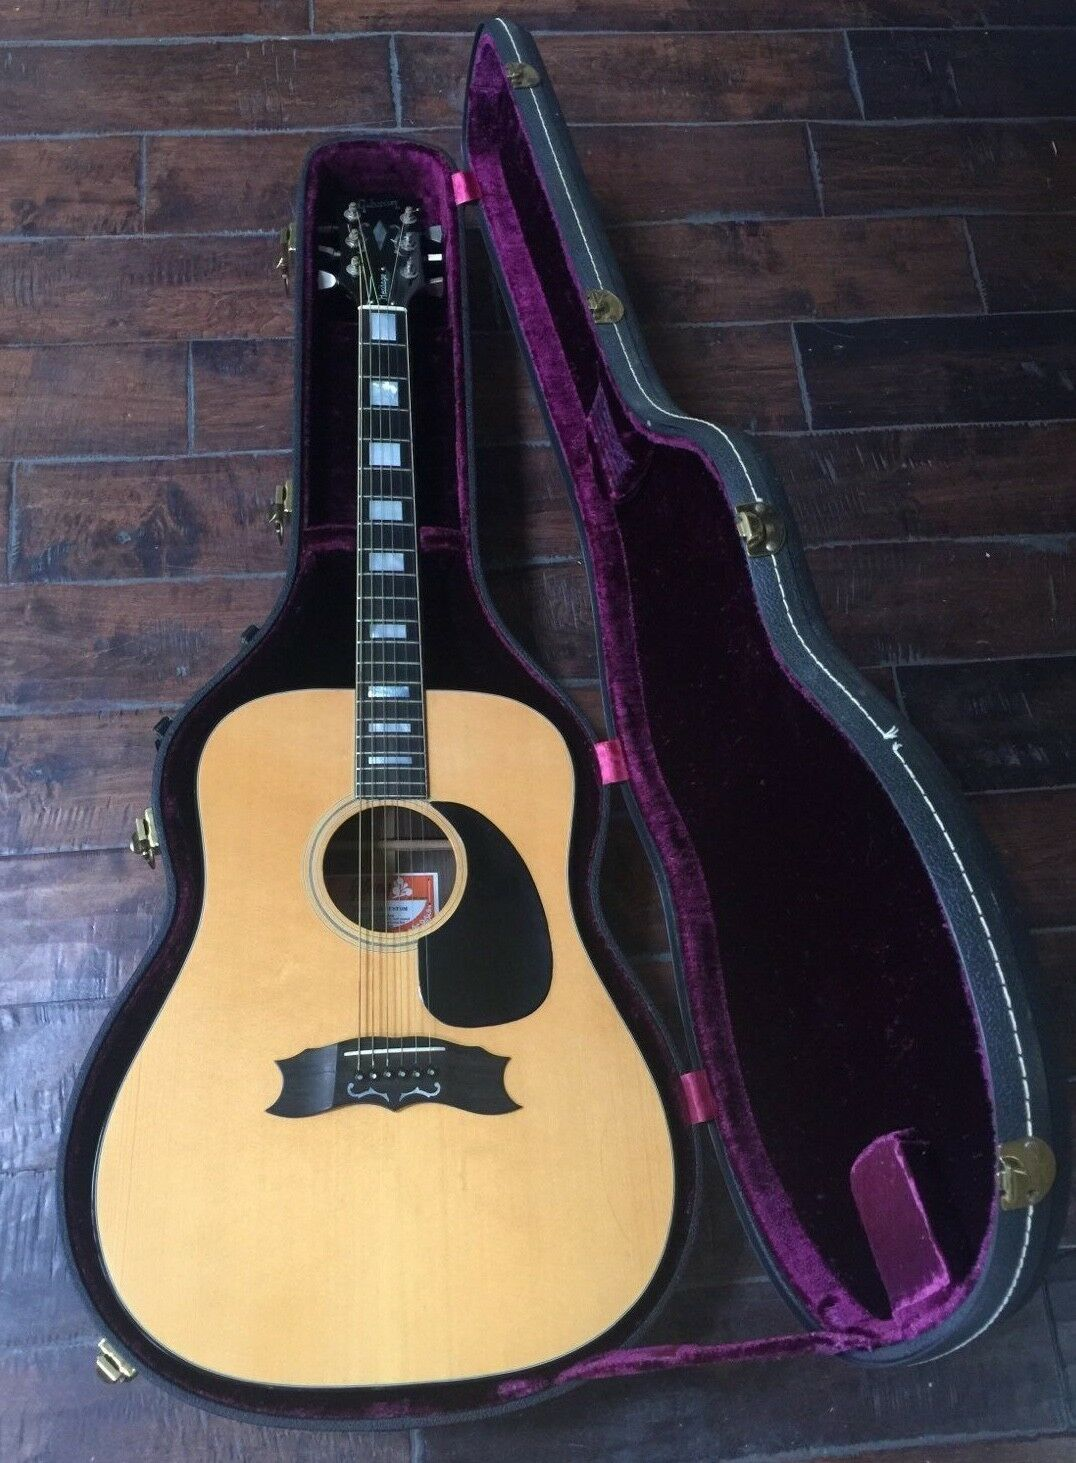 vintage gibson heritage custom acoustic guitar purple felt lined case acoustic. Black Bedroom Furniture Sets. Home Design Ideas